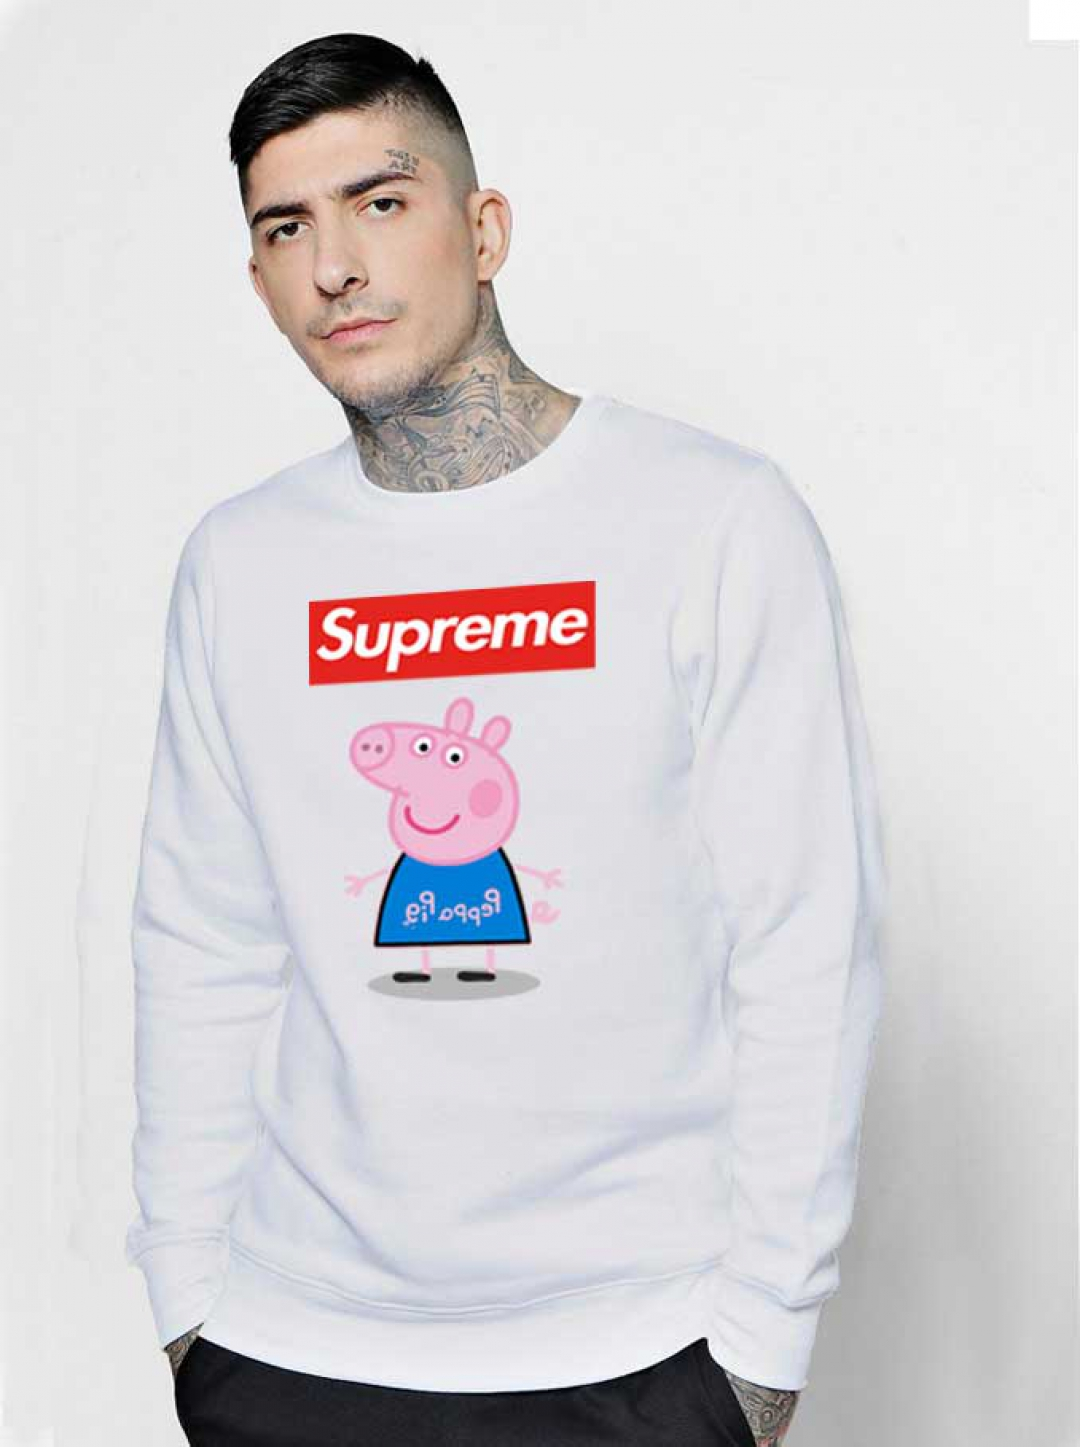 Supreme-Box-Blue-Peppa-Pig-Sweatshirt-1080x1447.jpg